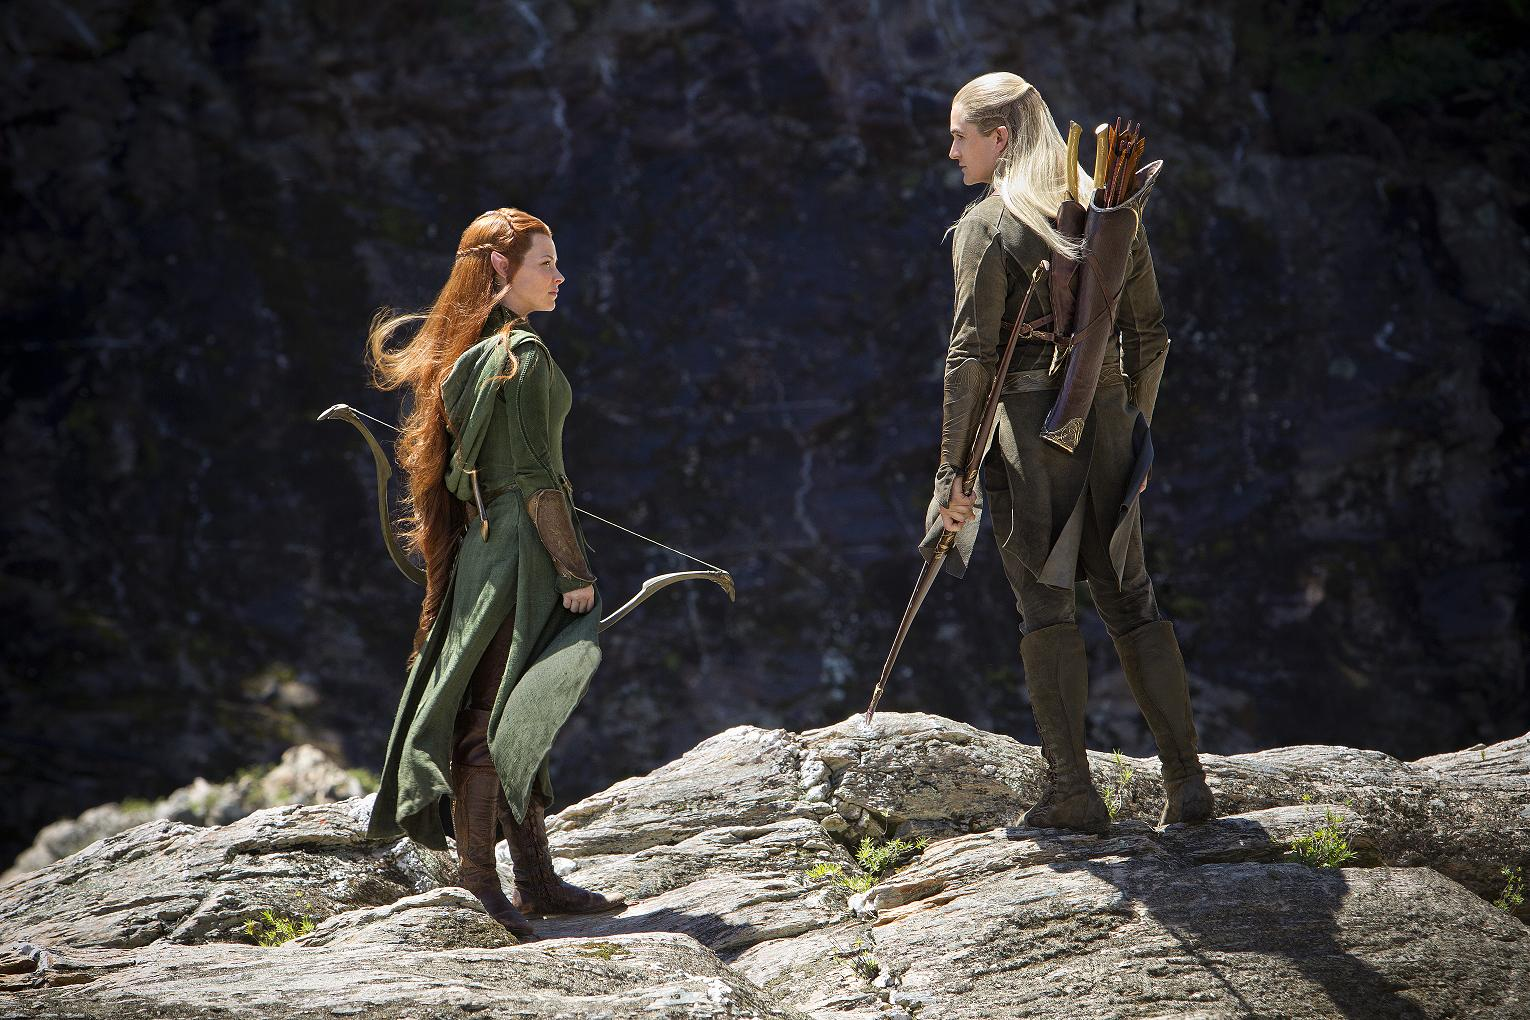 lilly legolas tauriel - photo #10